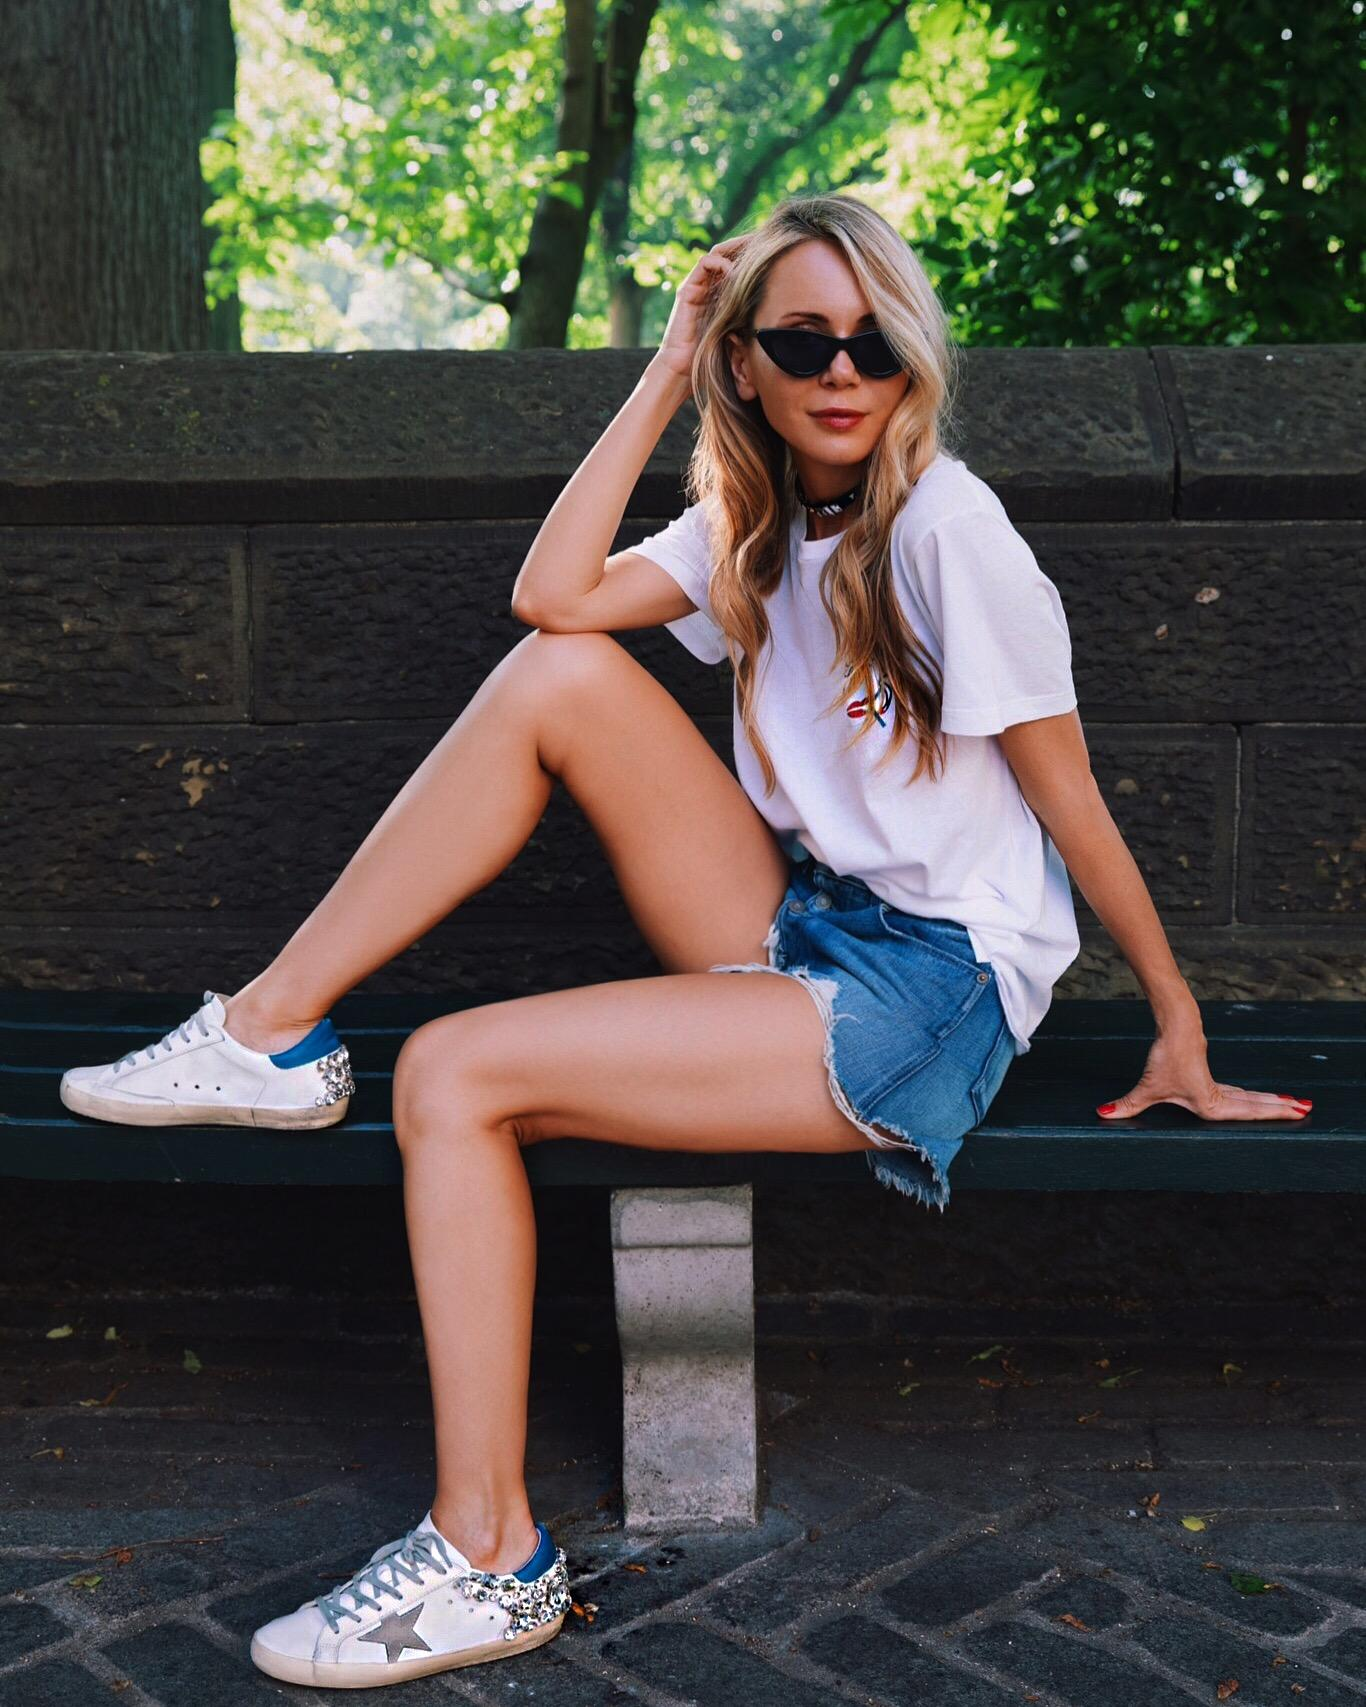 5 types of shoes for the best summer look.